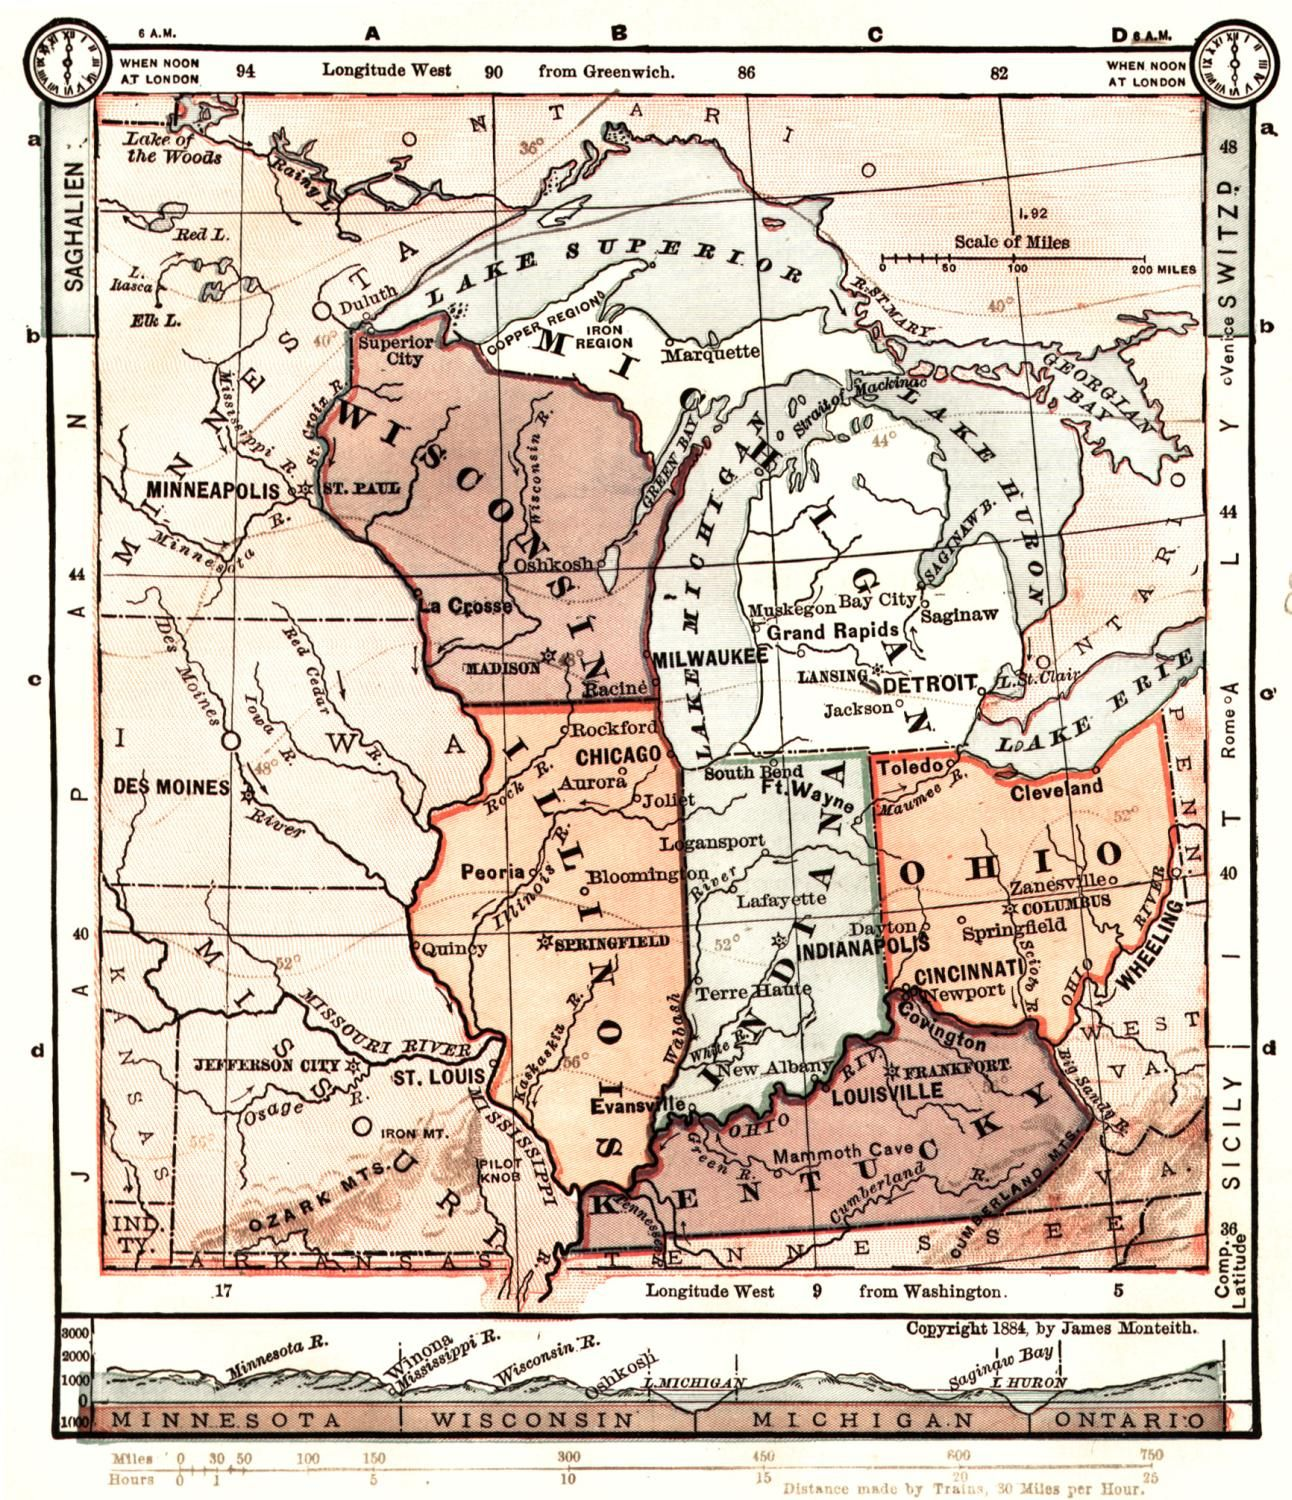 1884 Midwest Us Map From The Wisconsin Digital Map Library - Map-of-the-midwest-us